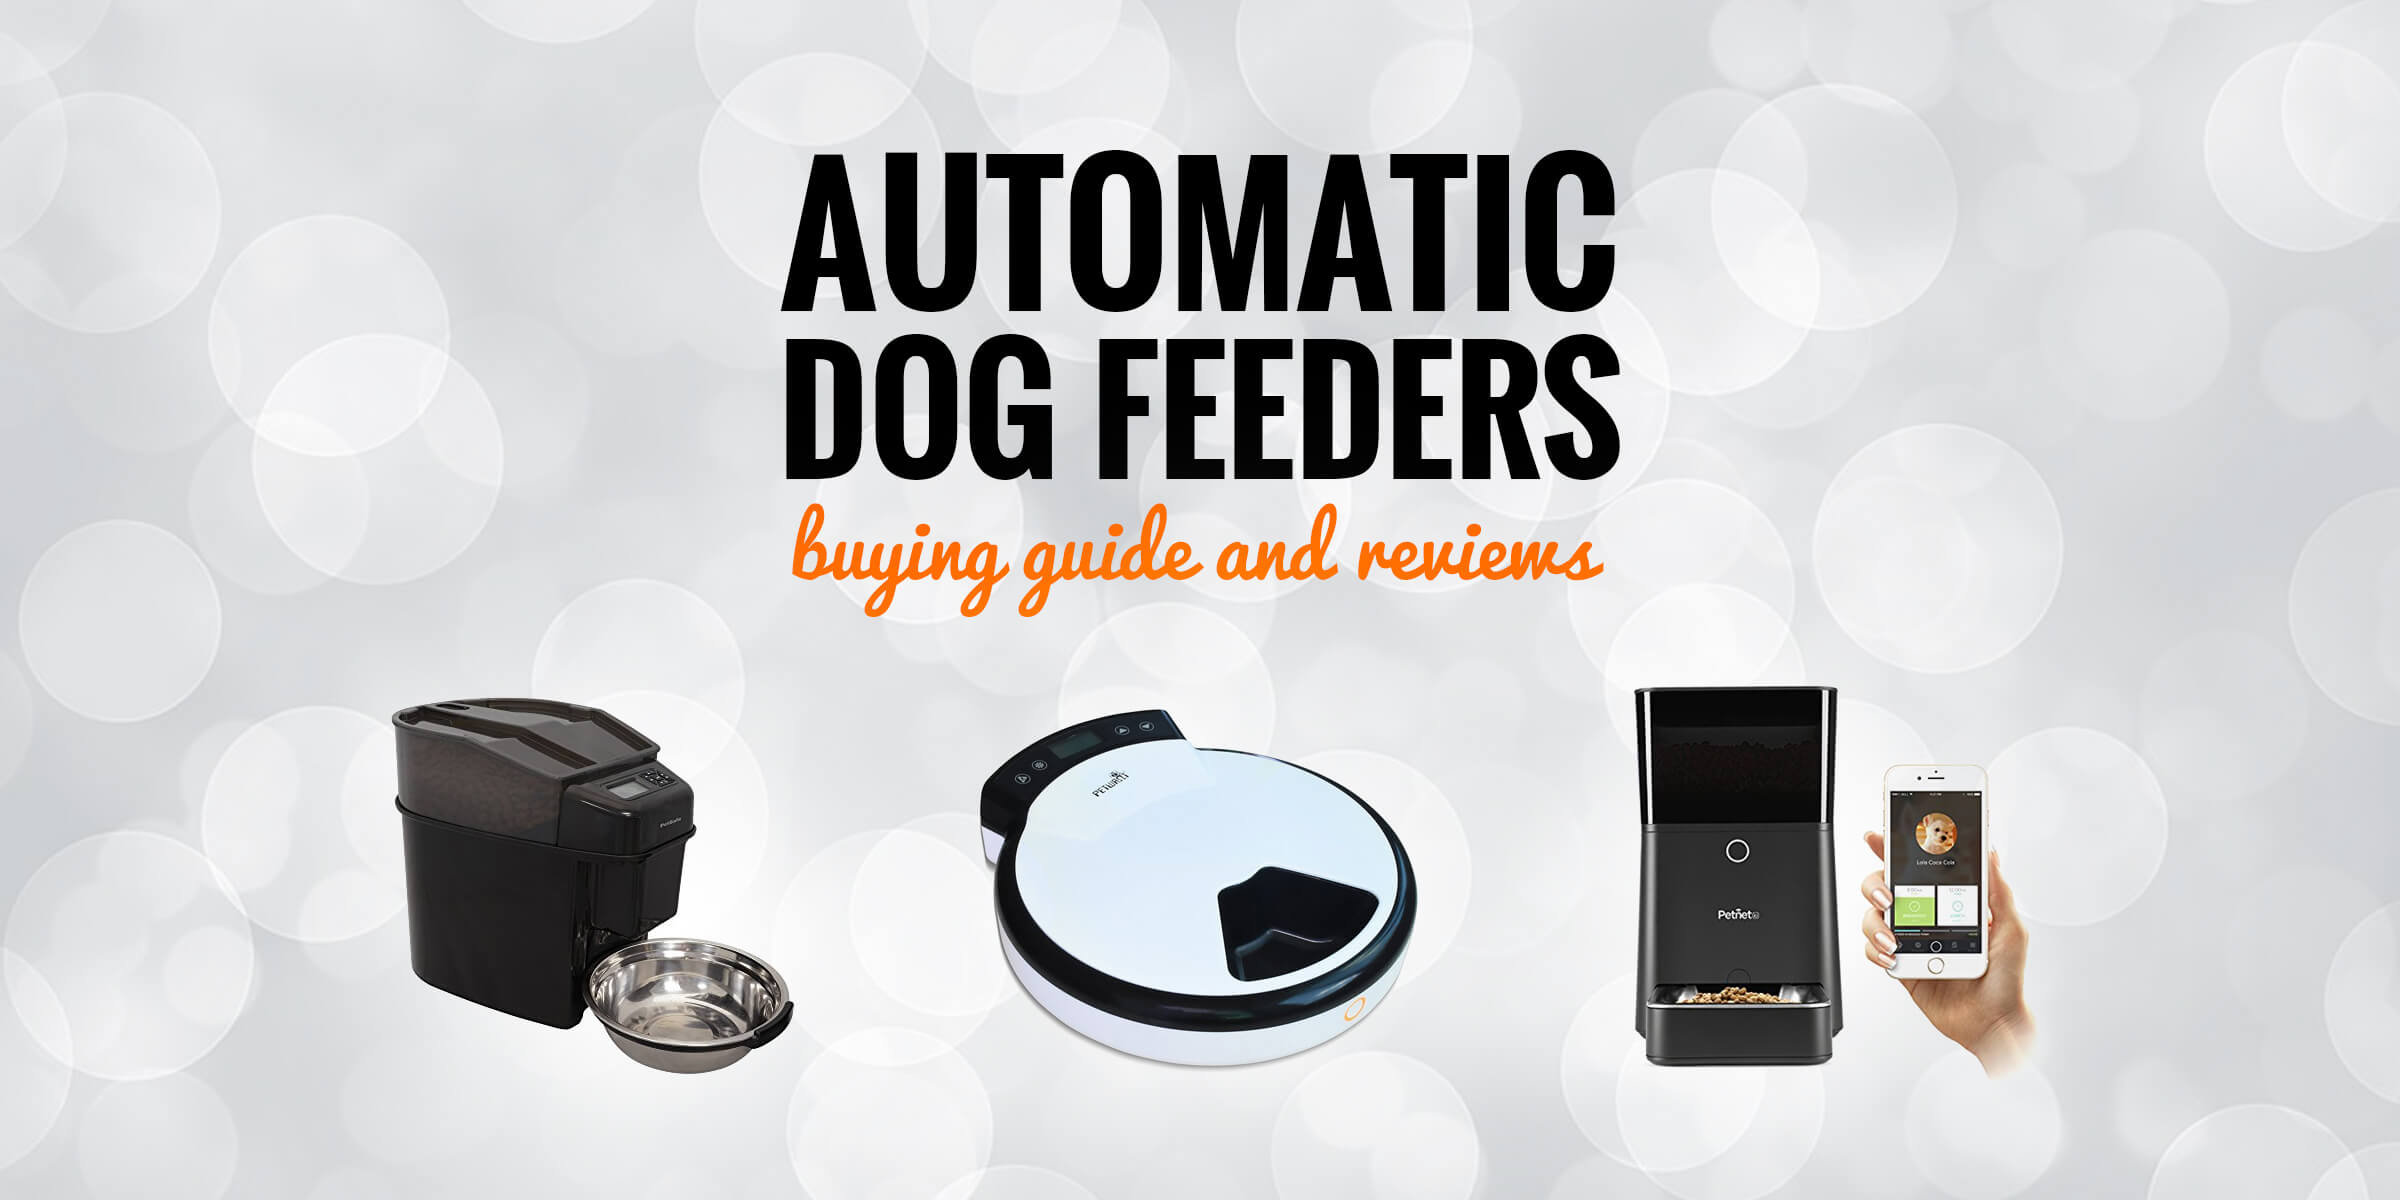 dispenses dog supplies dp feeder food dispenser pet cat travel dry automatic auto meal portion and petsafe digital